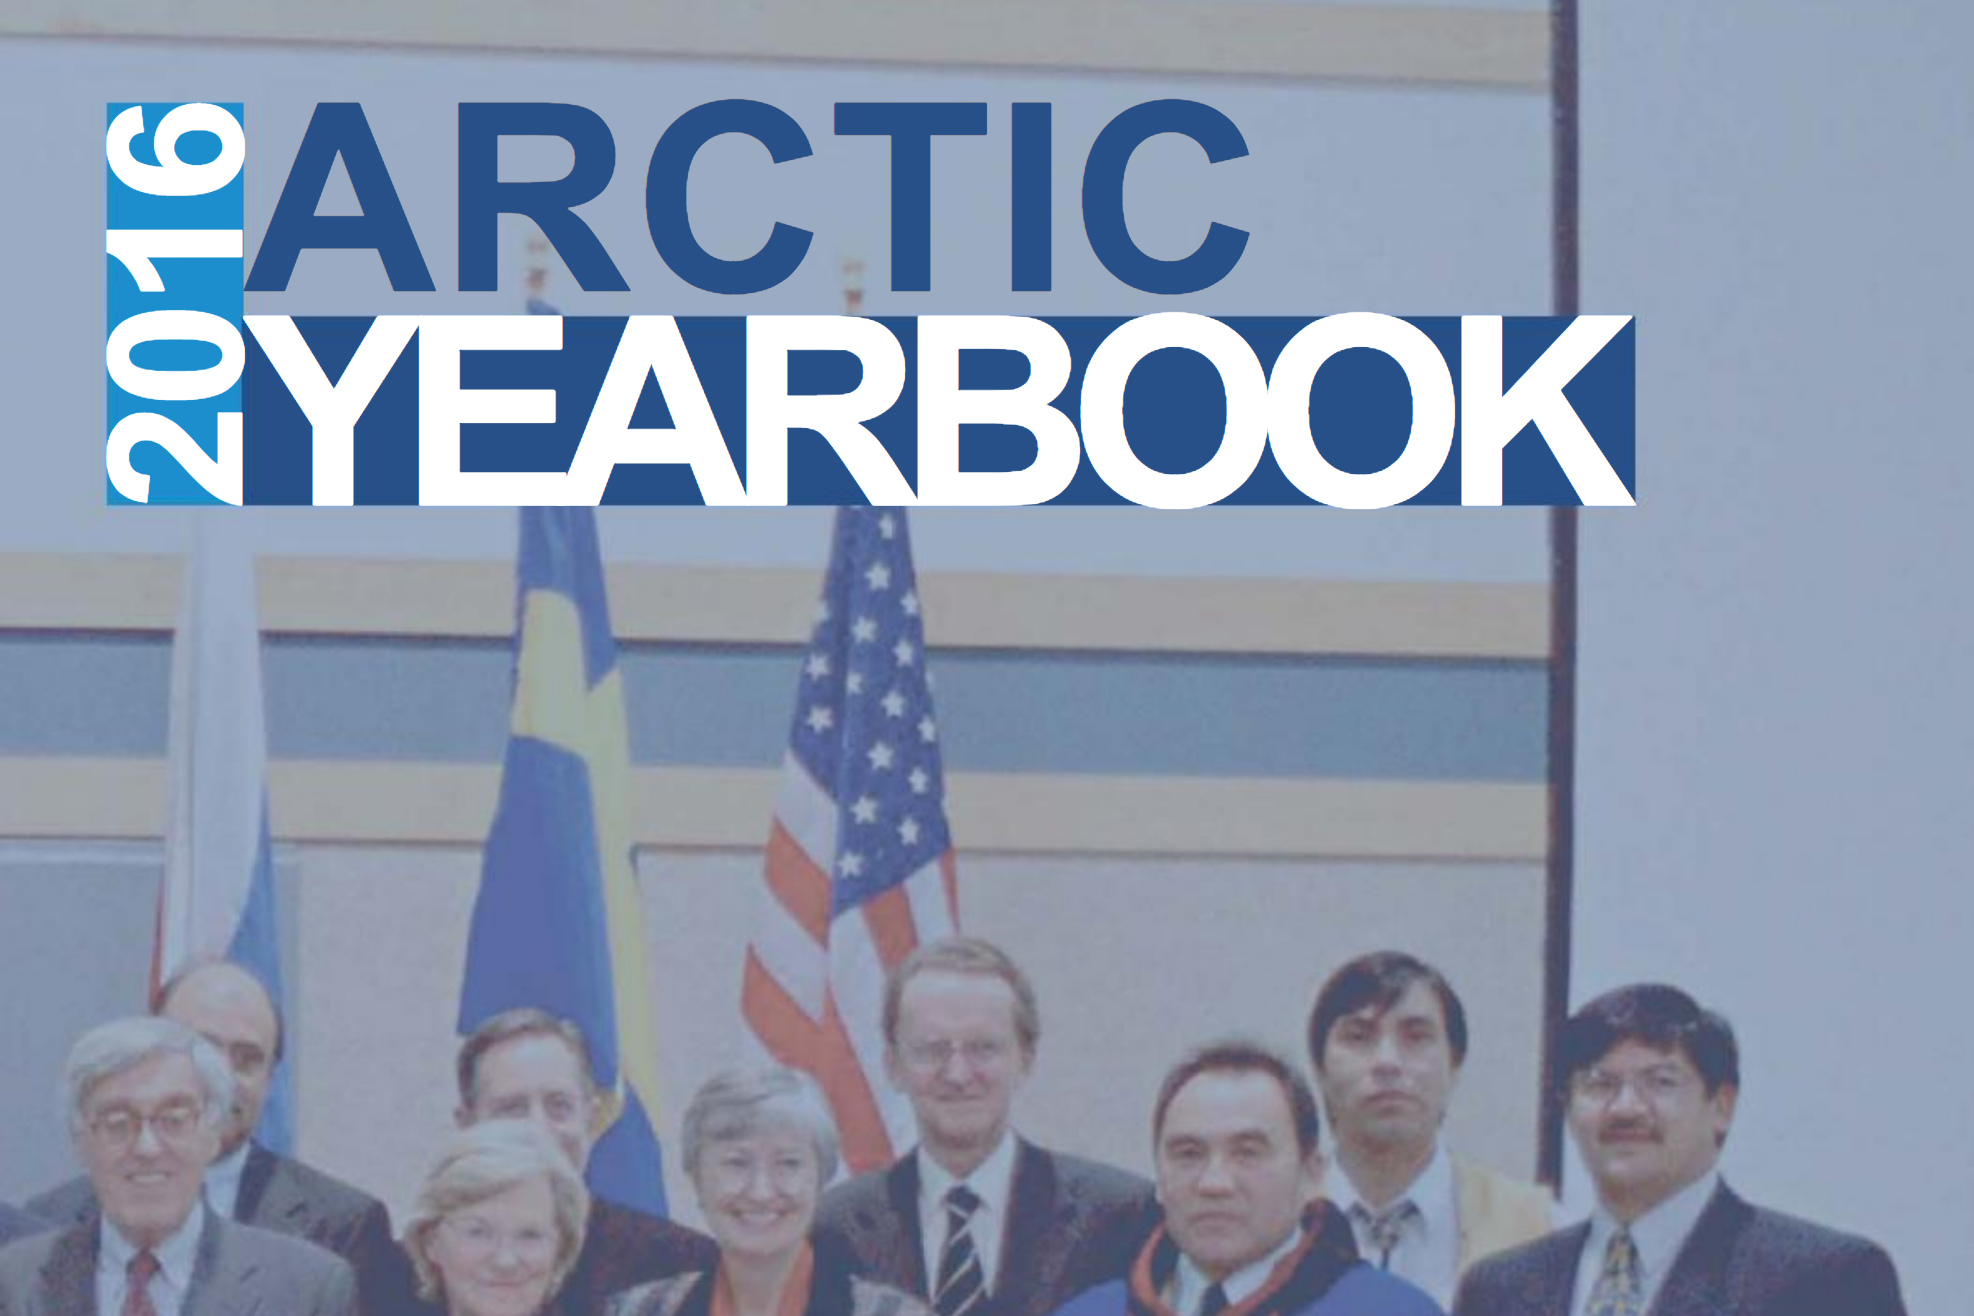 For its fifth edition, the Arctic Yearbook turns its attention to the Arctic Council